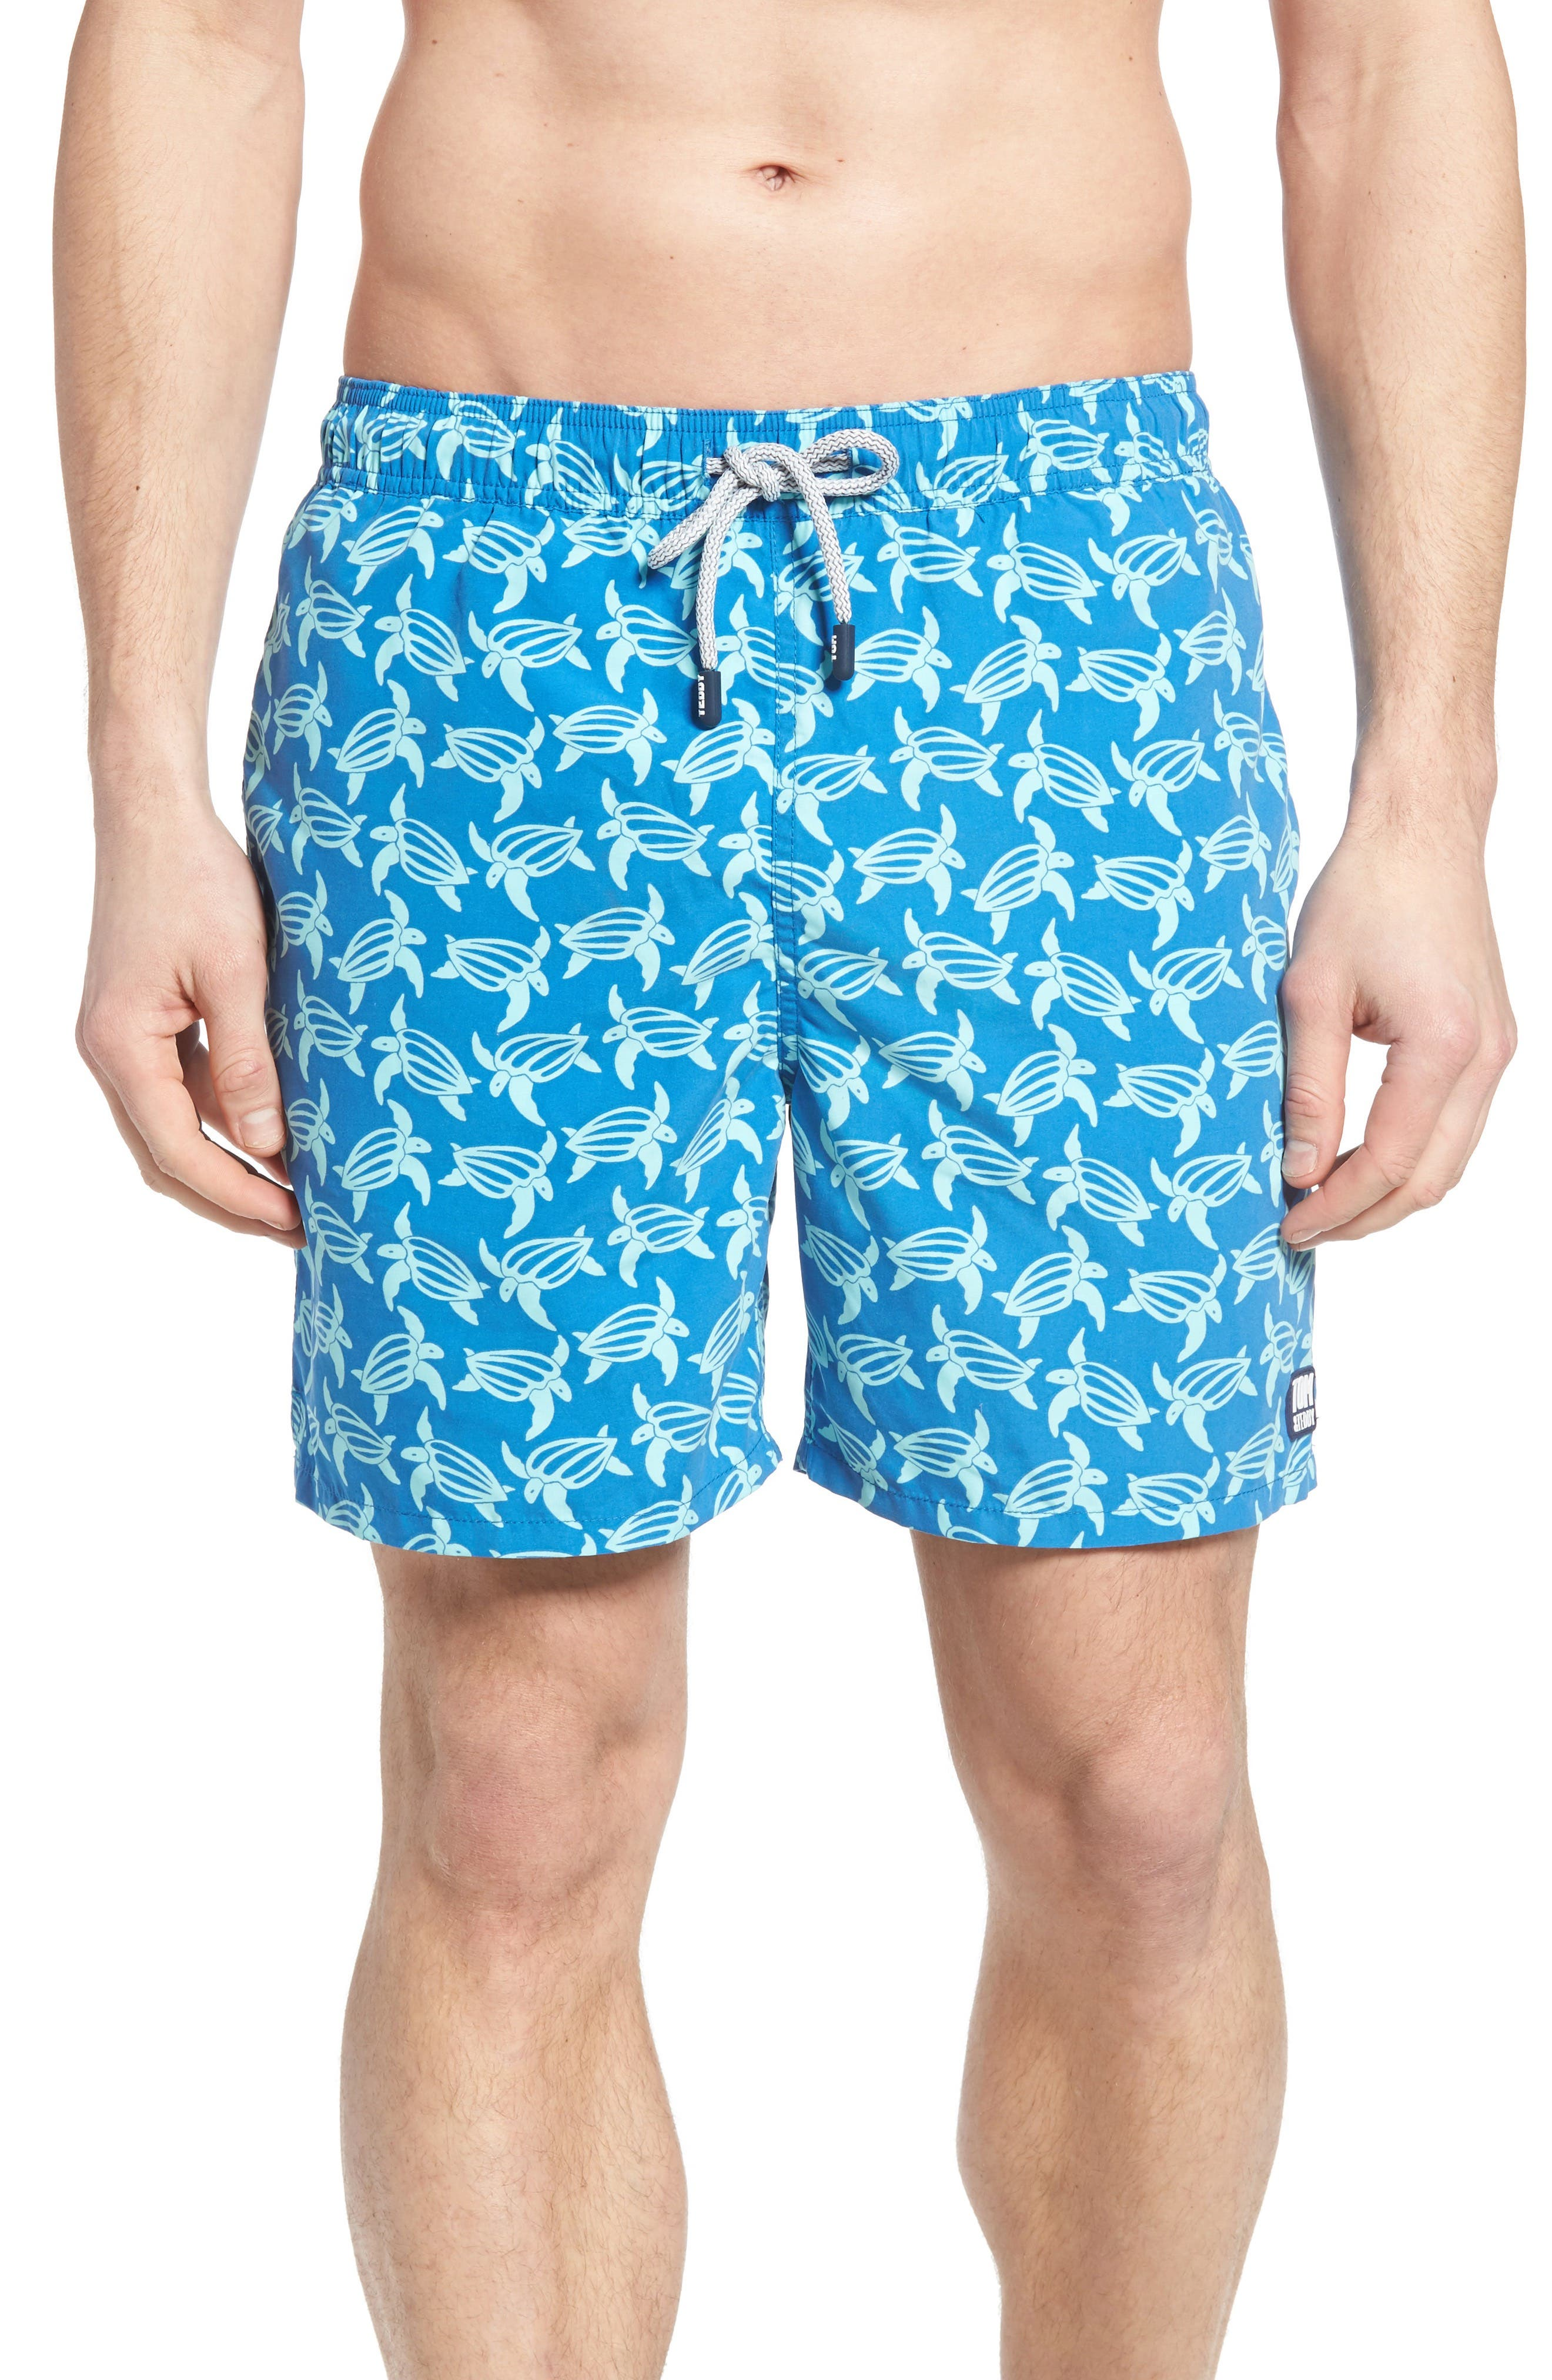 Turtle Print Swim Trunks,                             Main thumbnail 1, color,                             MID BLUE AND SKY